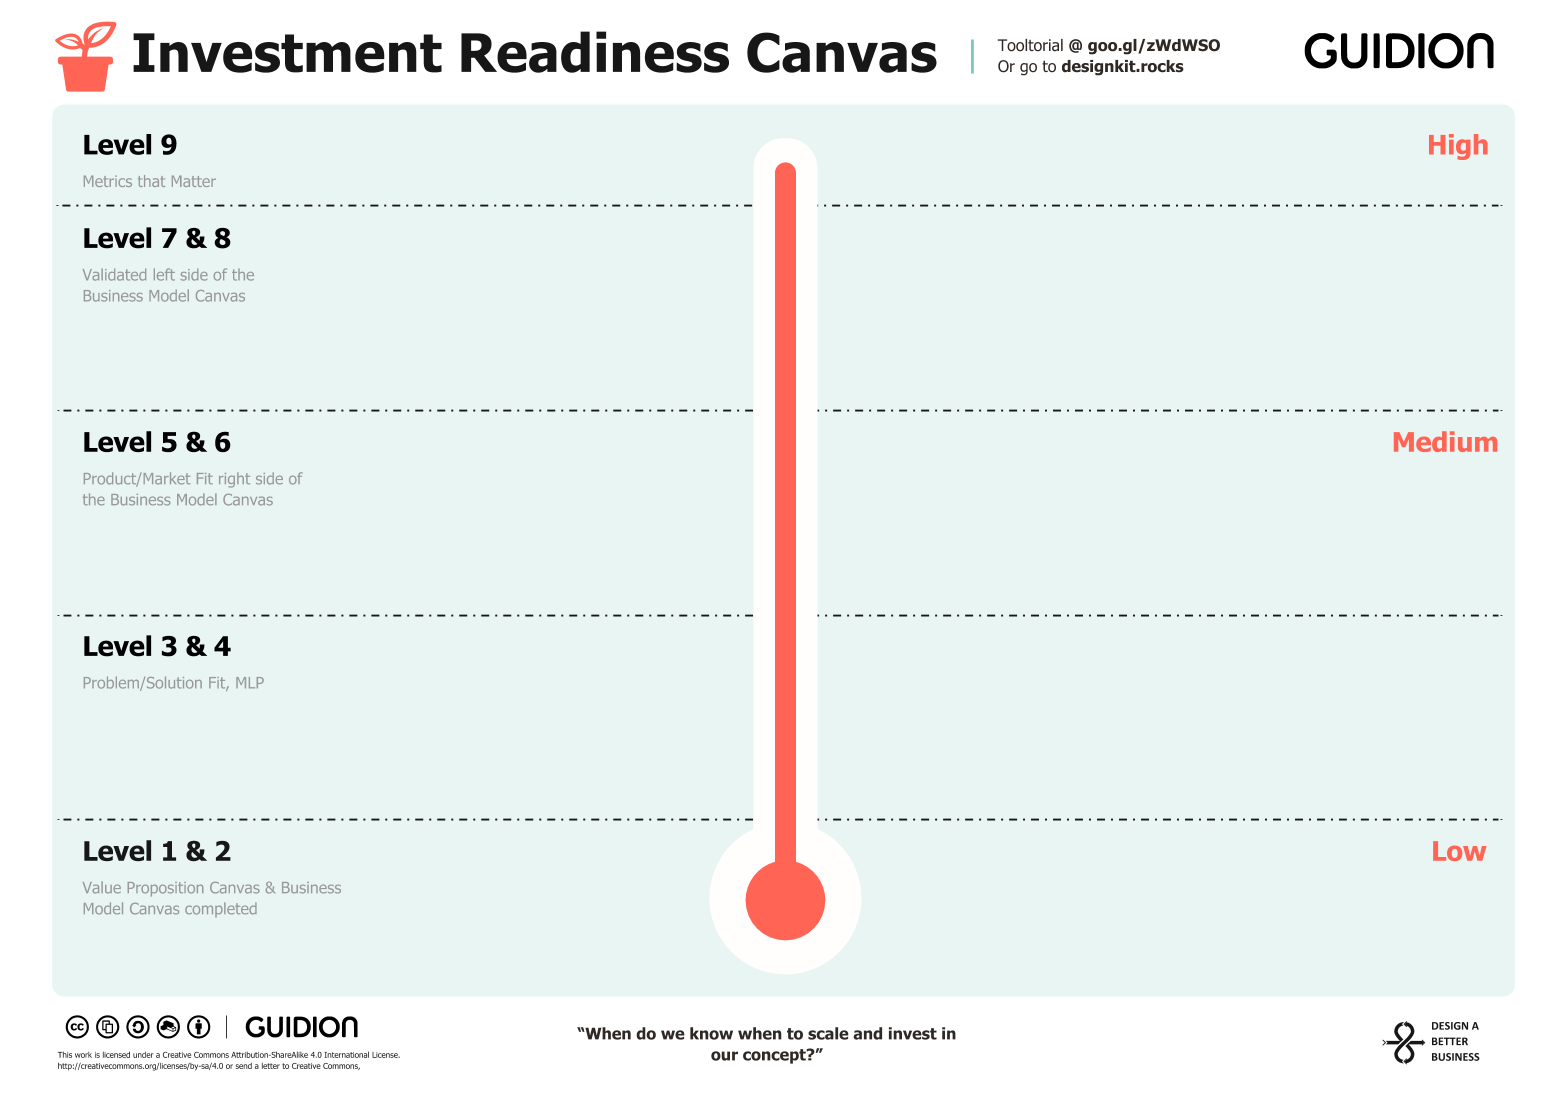 Investment Readiness Canvas